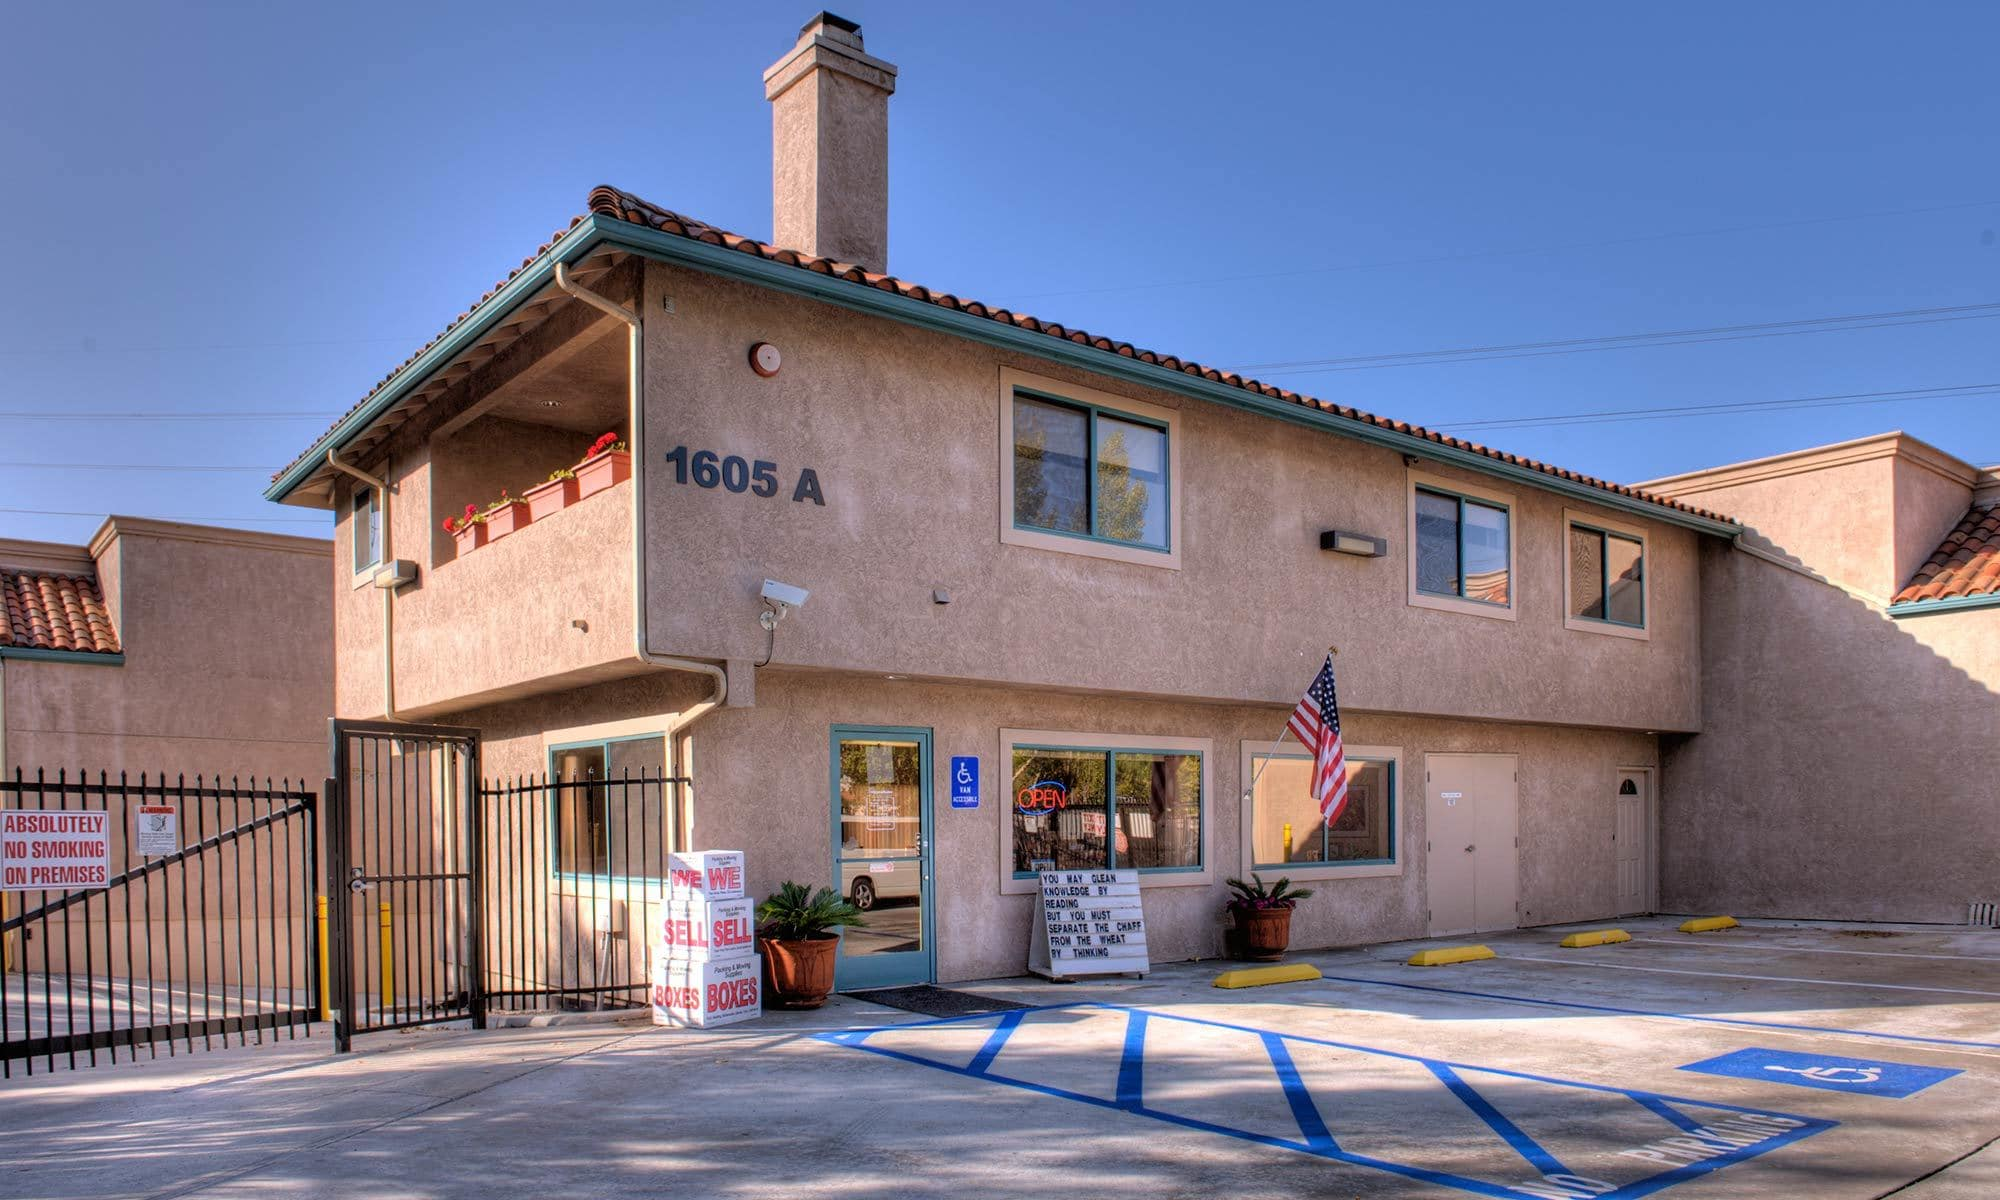 Self storage in Encinitas